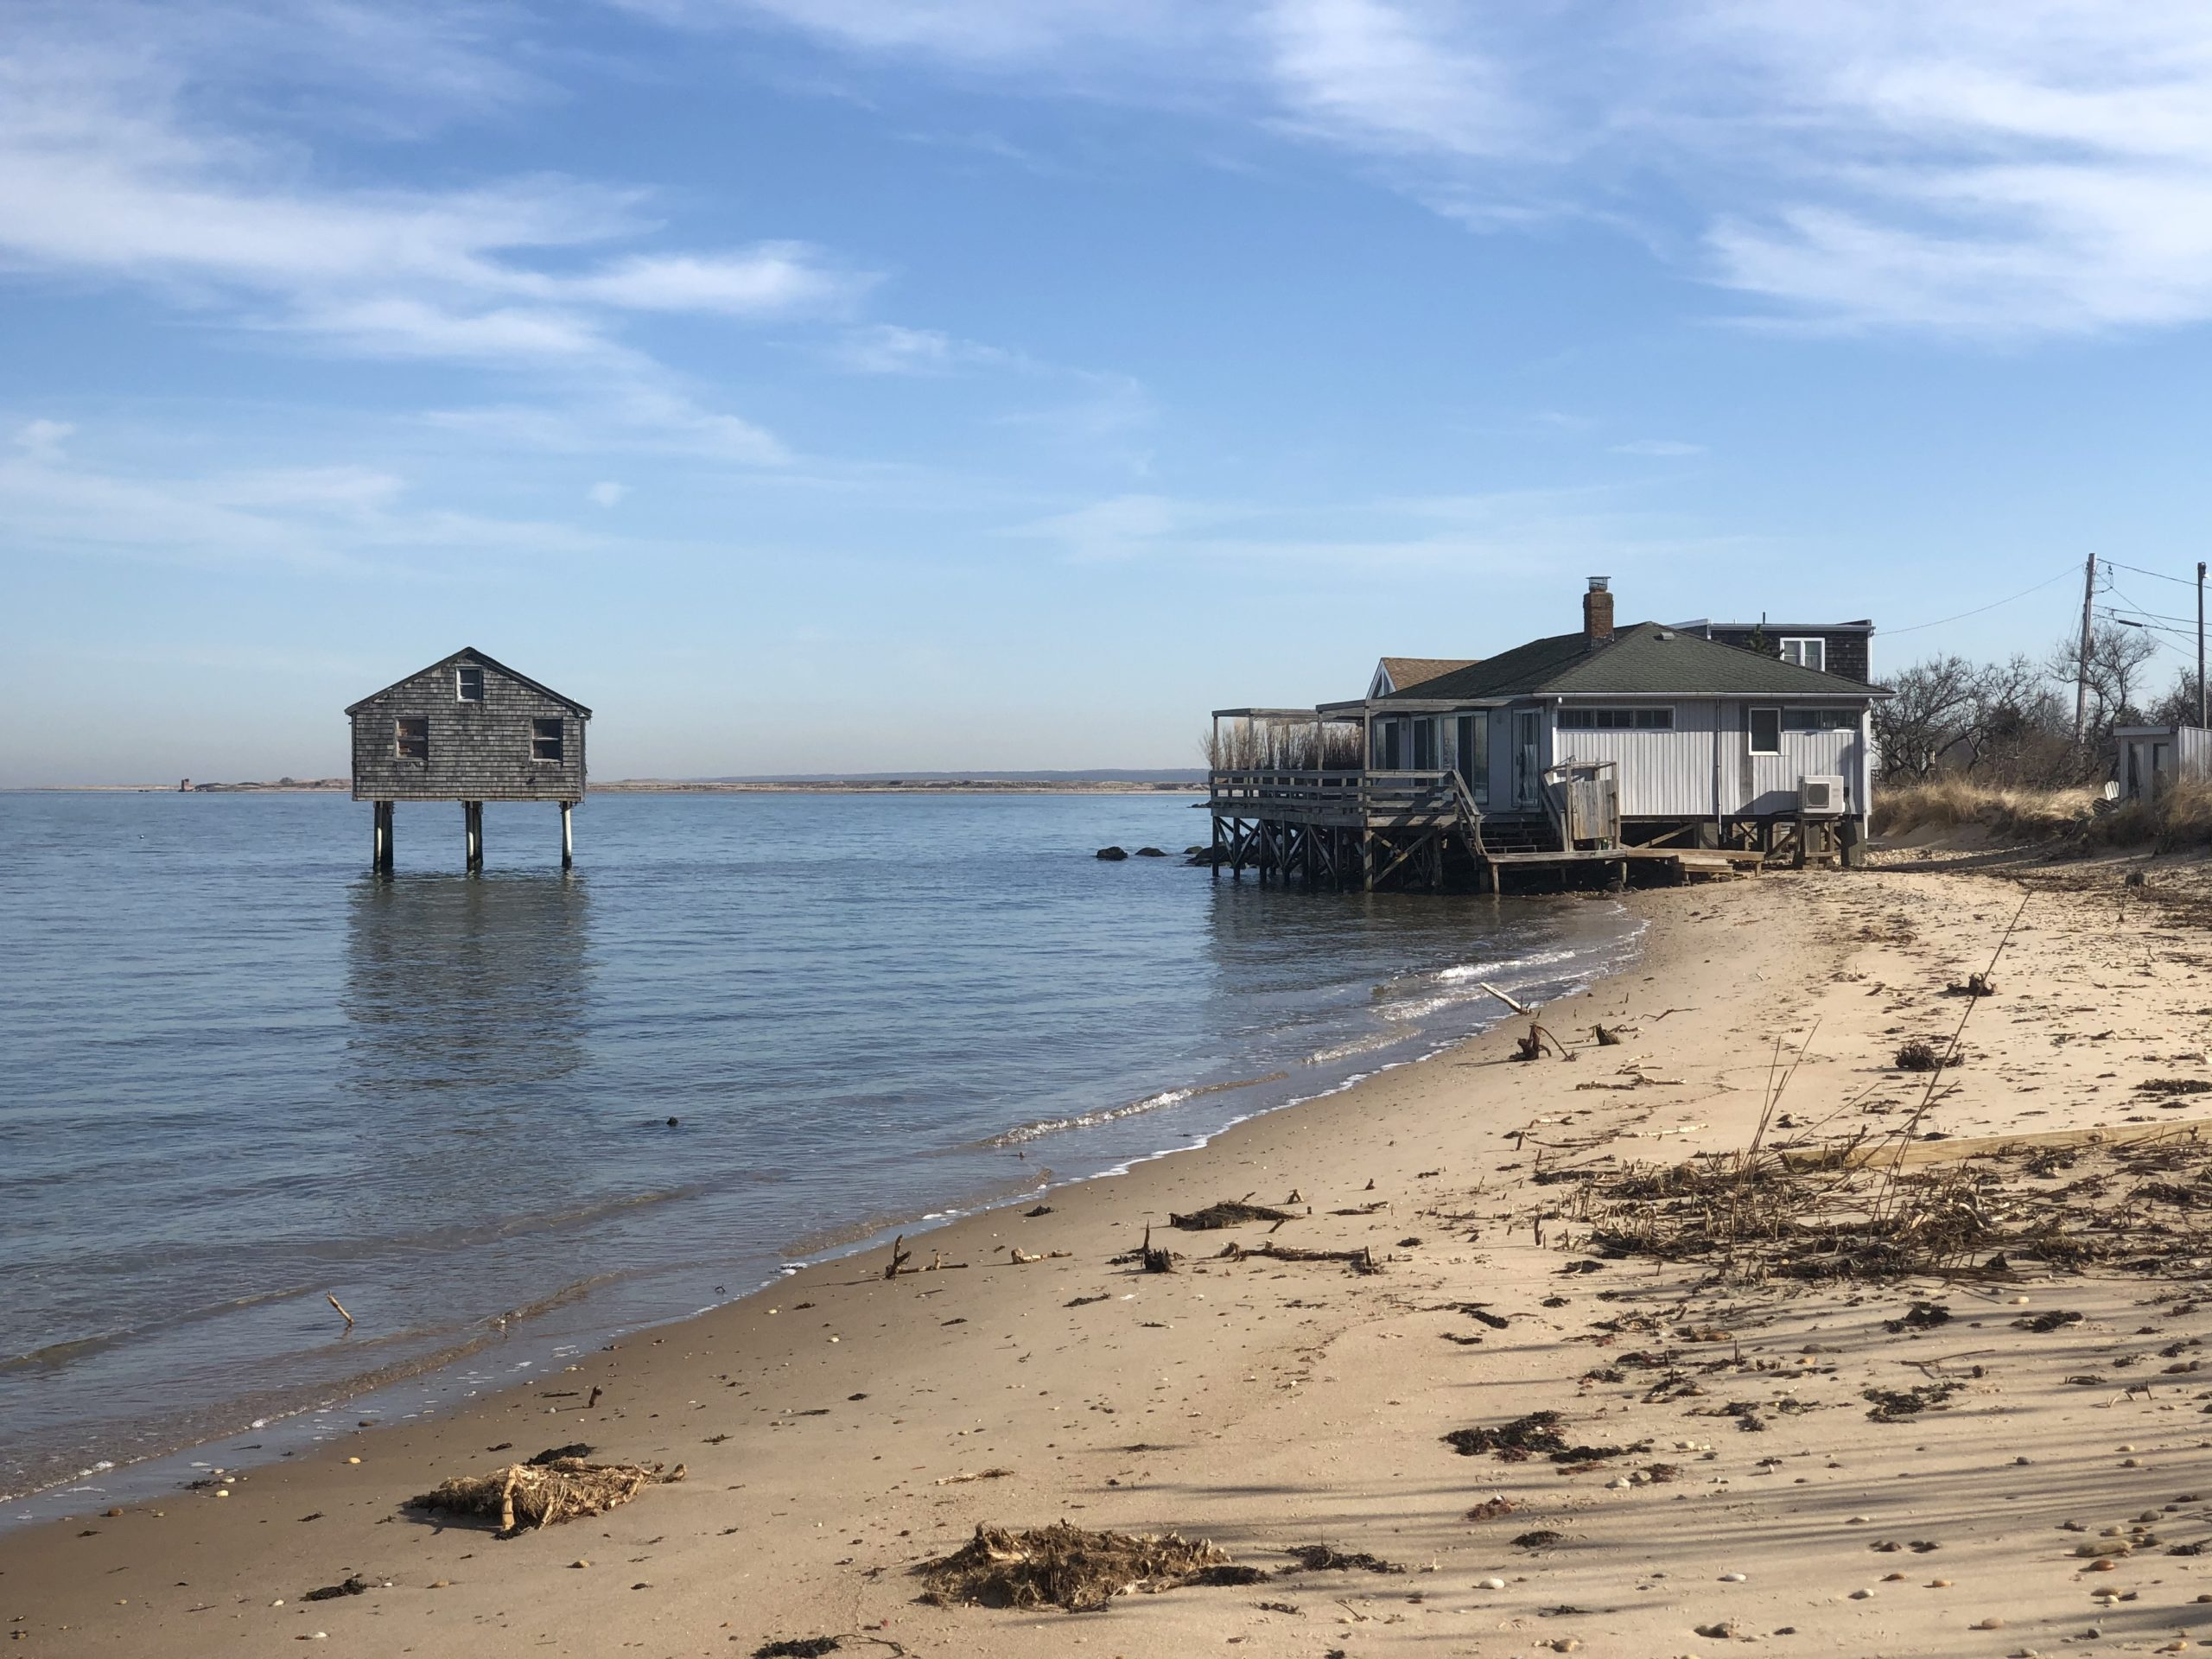 The waters of Gardiners Bay have steadily shoved the shoreline near Lazy Point inland, to the point that the homes at the very end of Mulford Lane have gone from inland to waterfront. The town zoning board denied an application by a Mulford Lane homeowner to construct a stone revetment.